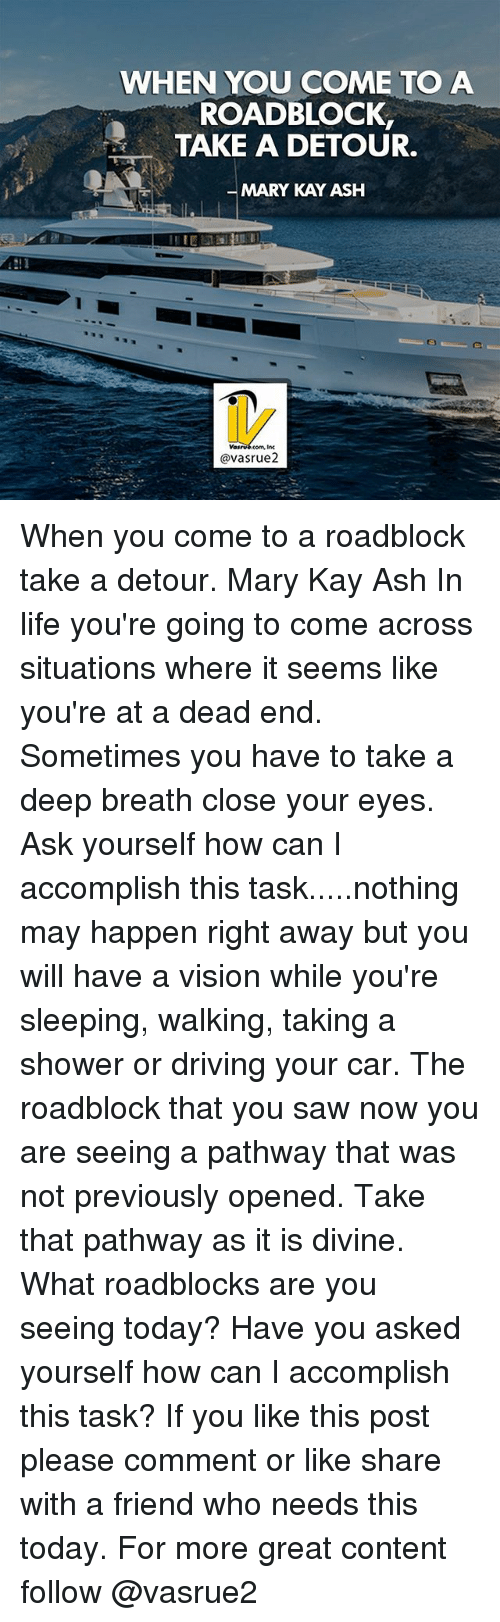 Takes A Deep Breath: WHEN YOU COME TO A  ROADBLOCK,  TAKE A DETOUR.  MARY KAY ASH  avasrue2 When you come to a roadblock take a detour. Mary Kay Ash In life you're going to come across situations where it seems like you're at a dead end. Sometimes you have to take a deep breath close your eyes. Ask yourself how can I accomplish this task.....nothing may happen right away but you will have a vision while you're sleeping, walking, taking a shower or driving your car. The roadblock that you saw now you are seeing a pathway that was not previously opened. Take that pathway as it is divine. What roadblocks are you seeing today? Have you asked yourself how can I accomplish this task? If you like this post please comment or like share with a friend who needs this today. For more great content follow @vasrue2